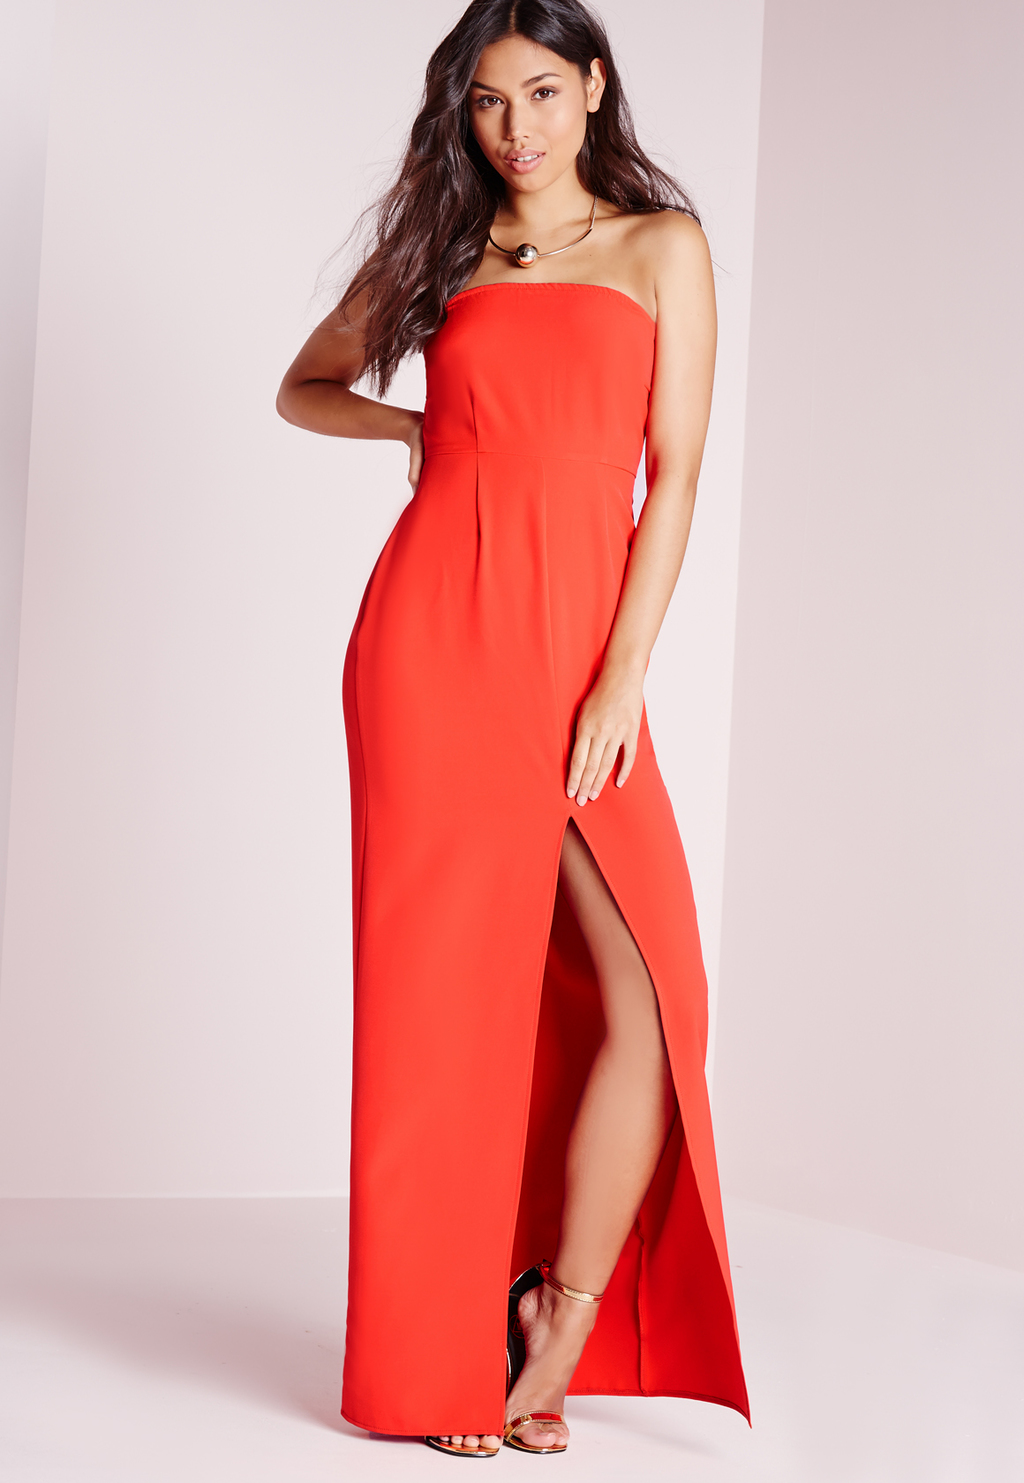 Bandeau Maxi Dress Red, Red - neckline: strapless (straight/sweetheart); pattern: plain; style: maxi dress; sleeve style: strapless; predominant colour: bright orange; occasions: evening; length: floor length; fit: body skimming; fibres: polyester/polyamide - stretch; hip detail: slits at hip; sleeve length: sleeveless; pattern type: fabric; texture group: jersey - stretchy/drapey; season: s/s 2016